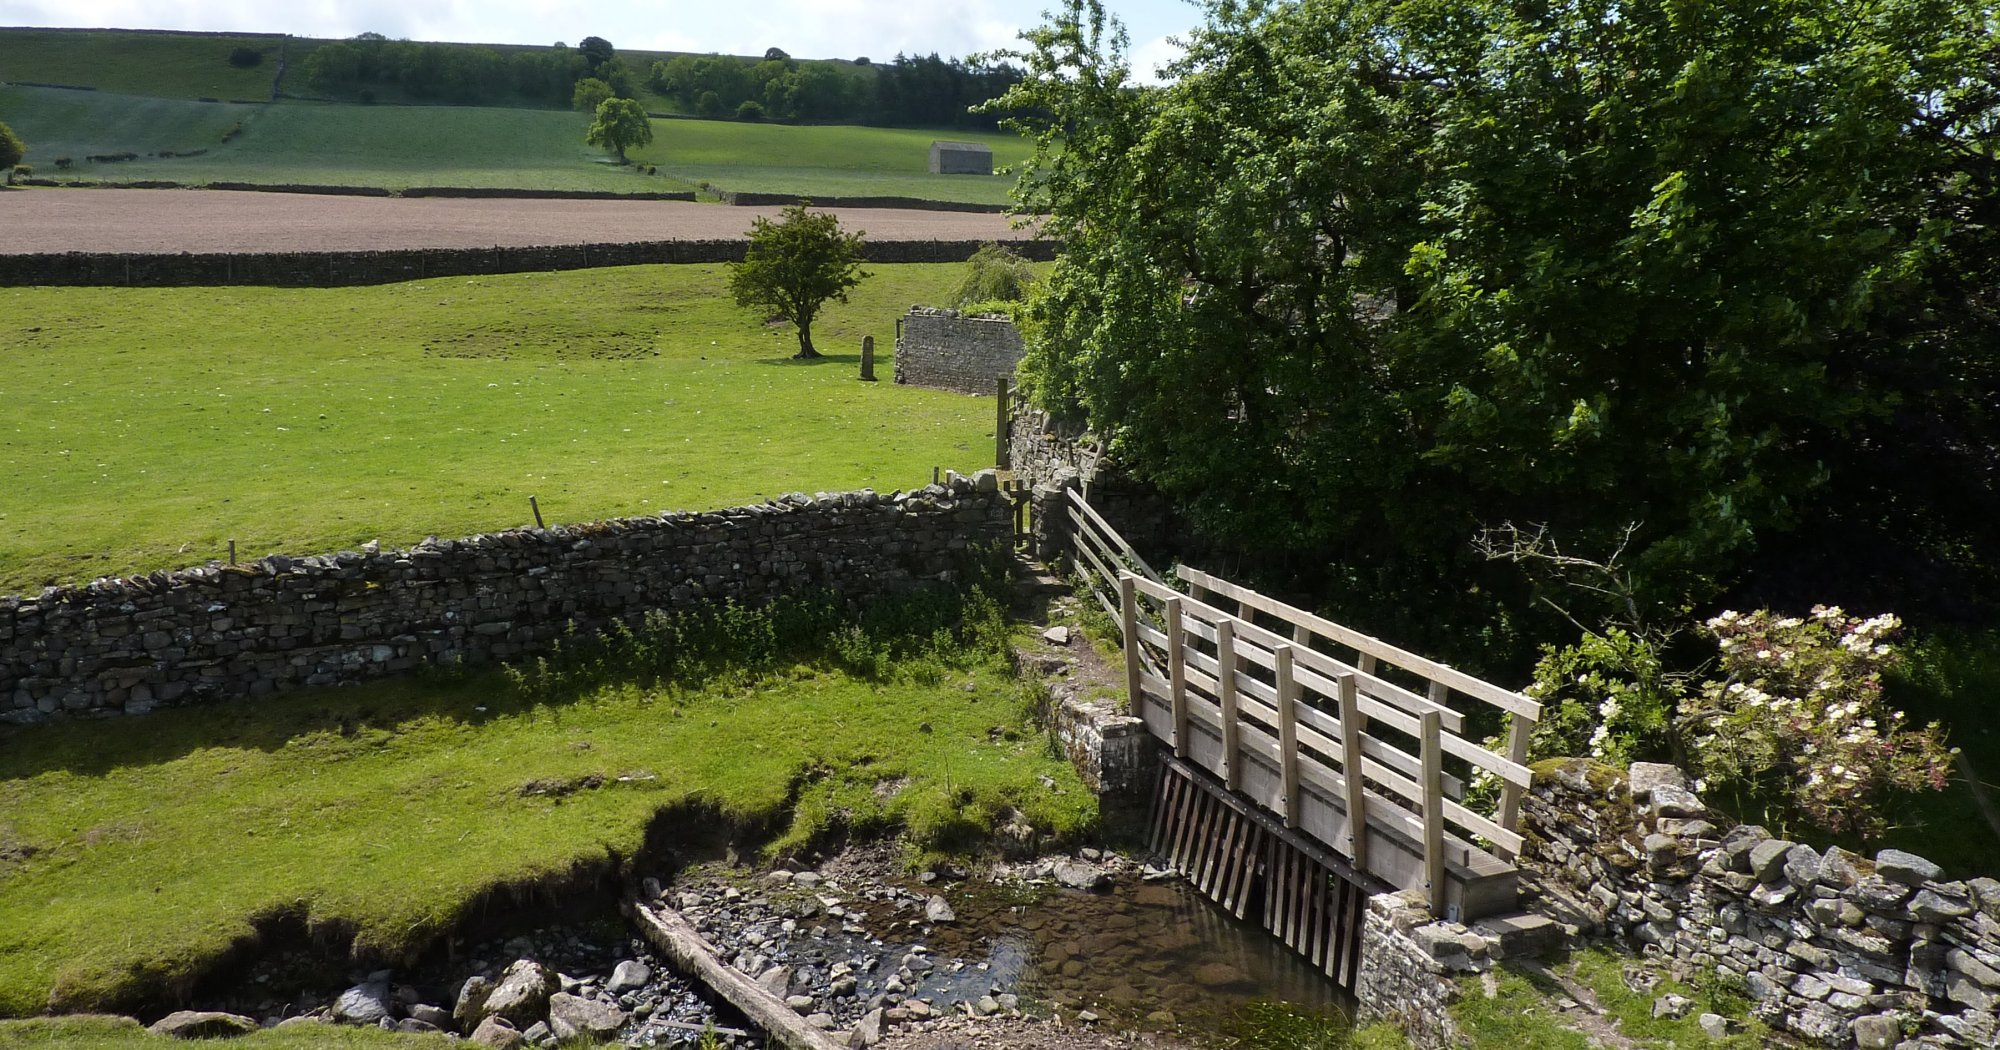 The footbridge at Ellers